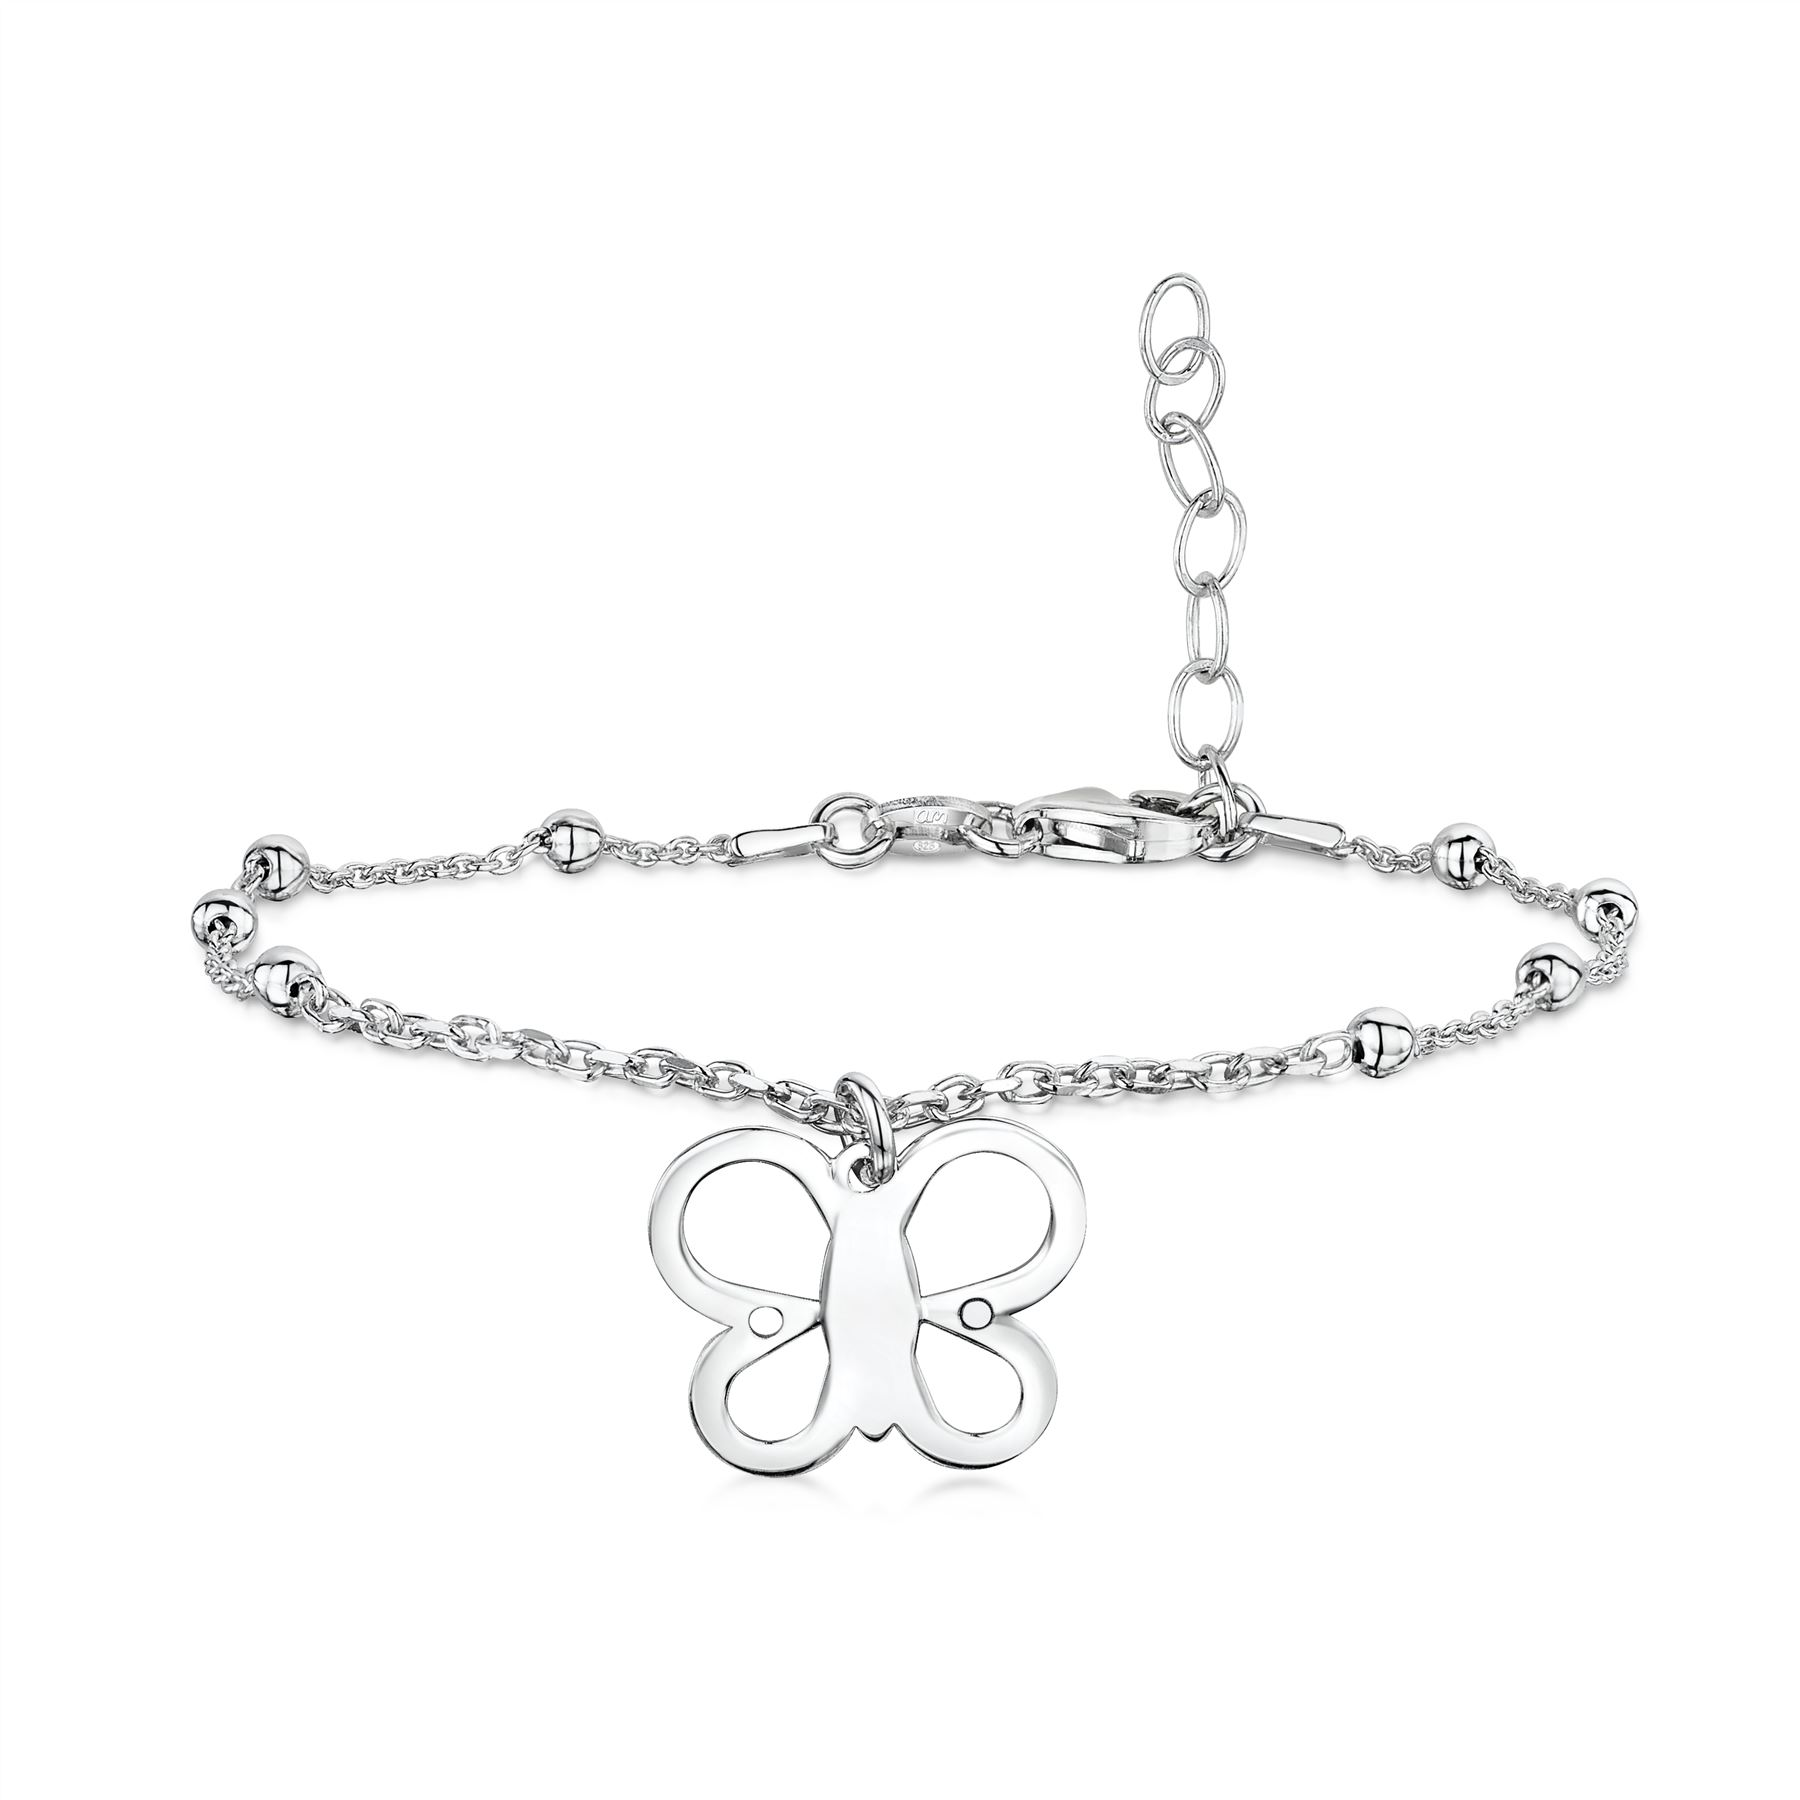 Amberta-Jewelry-925-Sterling-Silver-Adjustable-Anklet-for-Women-Made-in-Italy miniature 33